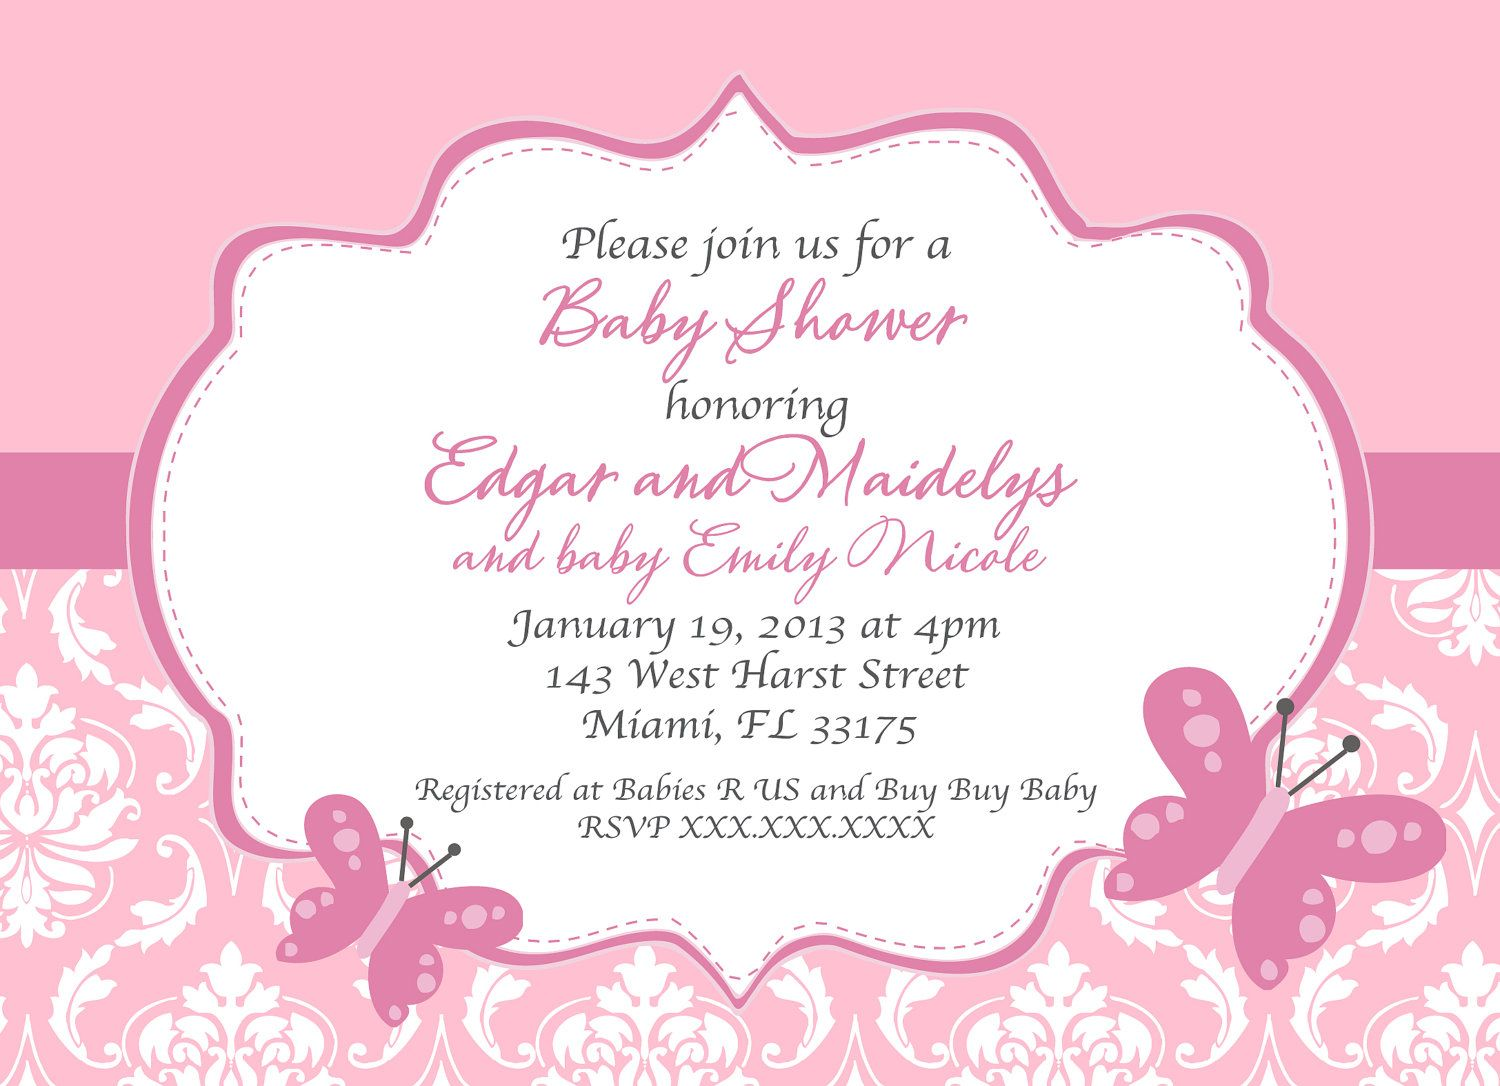 butterfly baby shower invitations free | new invitations, Baby shower invitations